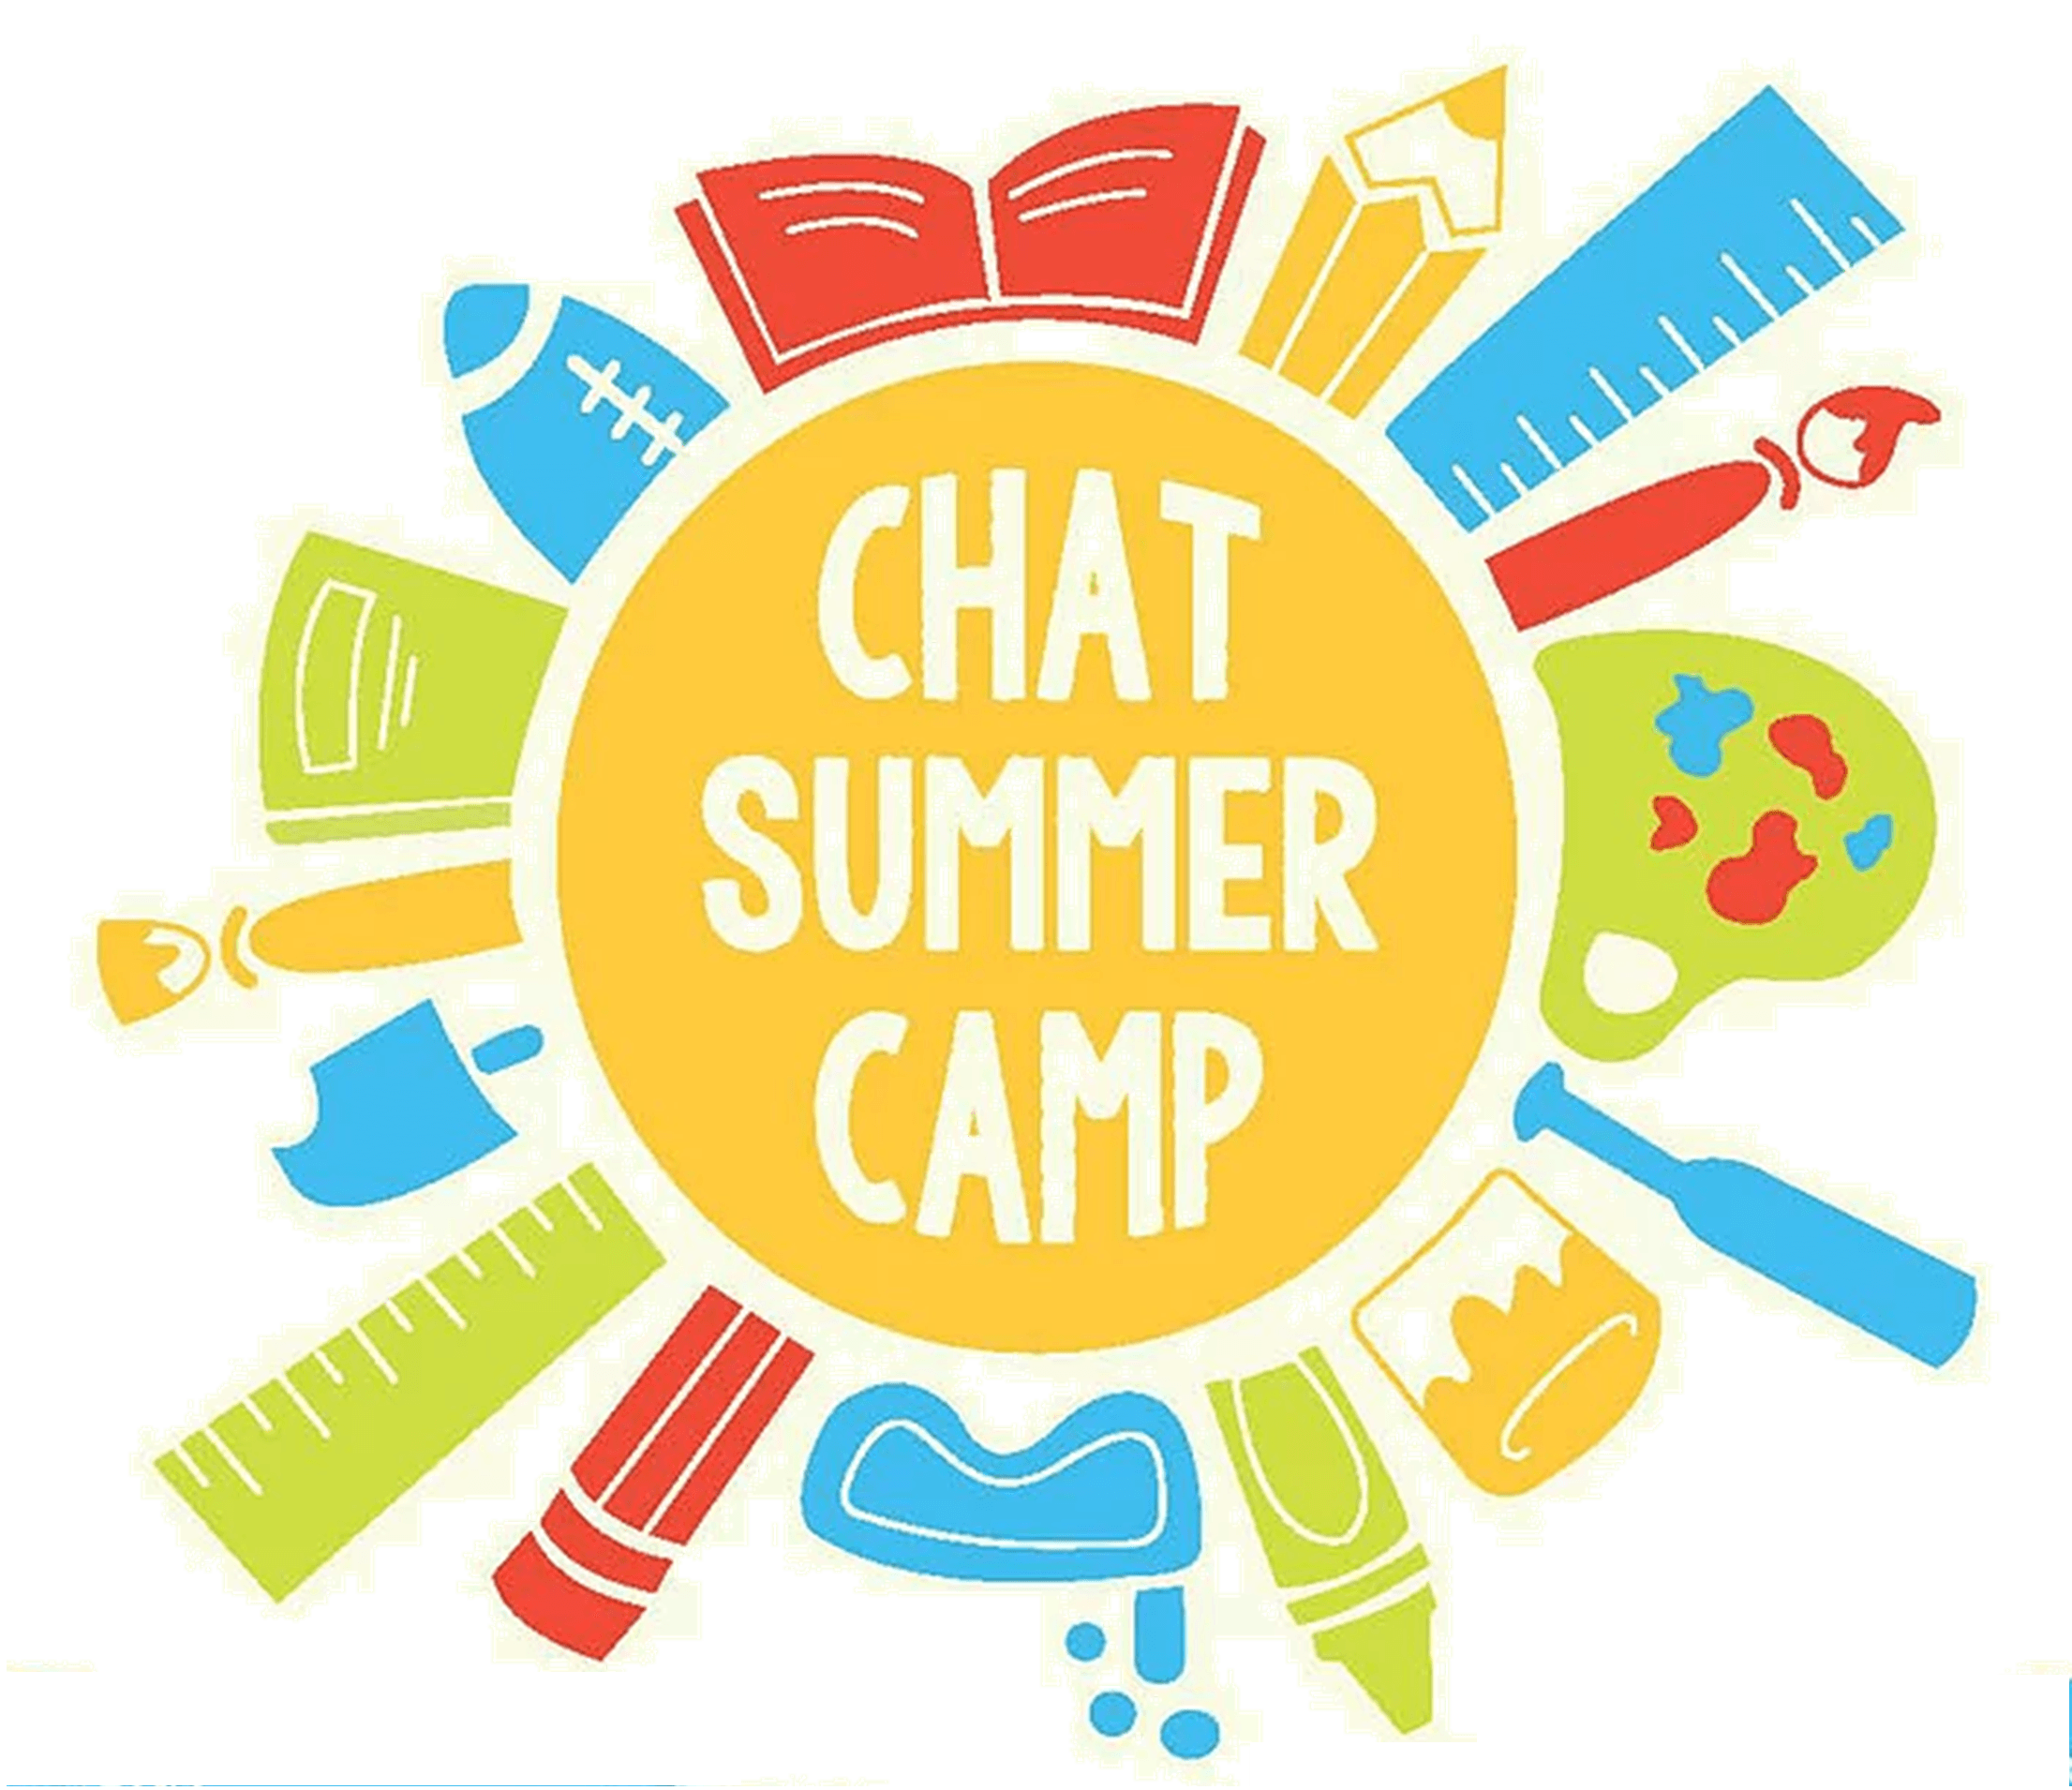 CHAT Summer Camp